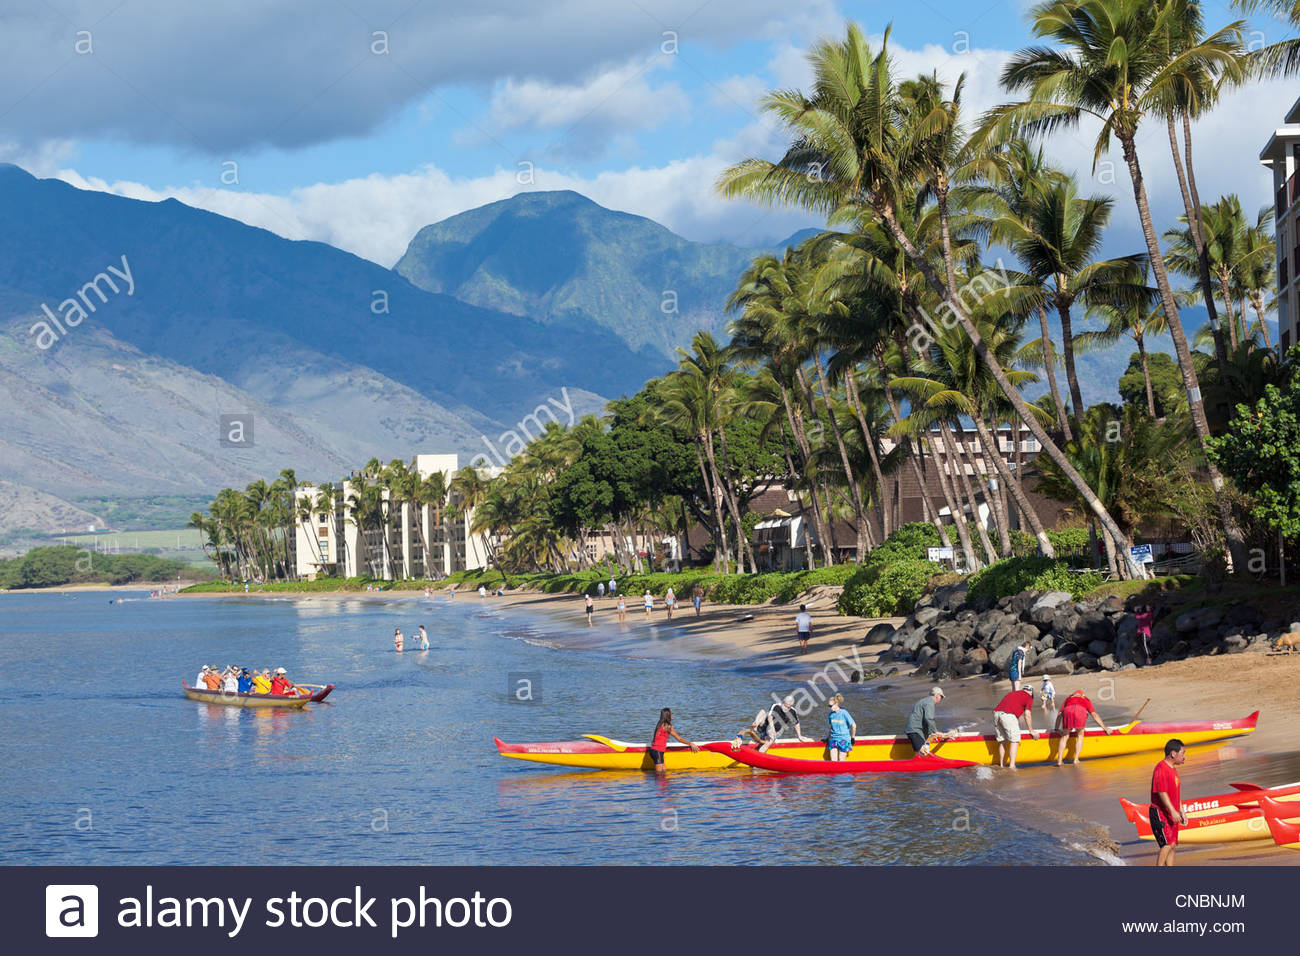 Outrigger canoes at Sugar Beach at the Kihei Canoe Club in Kihei on the island of Maui in the State of Hawaii USA - Stock Image